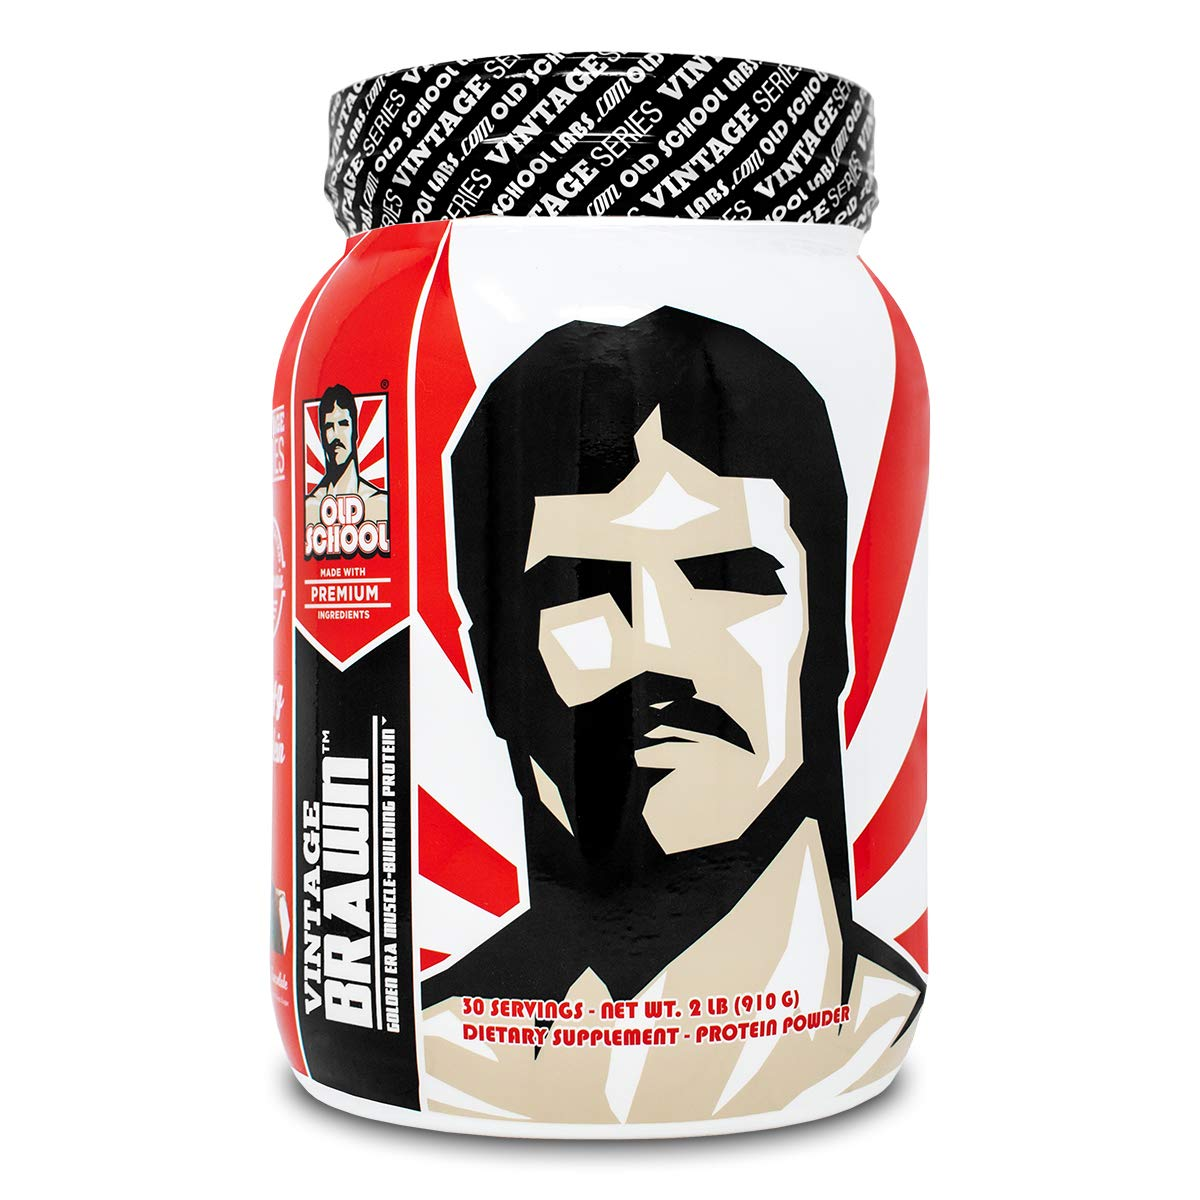 VINTAGE BRAWN Protein - Muscle-Building Protein Powder - The First Triple Isolate of Premium Egg, Milk (Whey and Casein), and Beef Protein - Rich Chocolate Flavor with Zero Sugars and No Artificials by Old School Labs